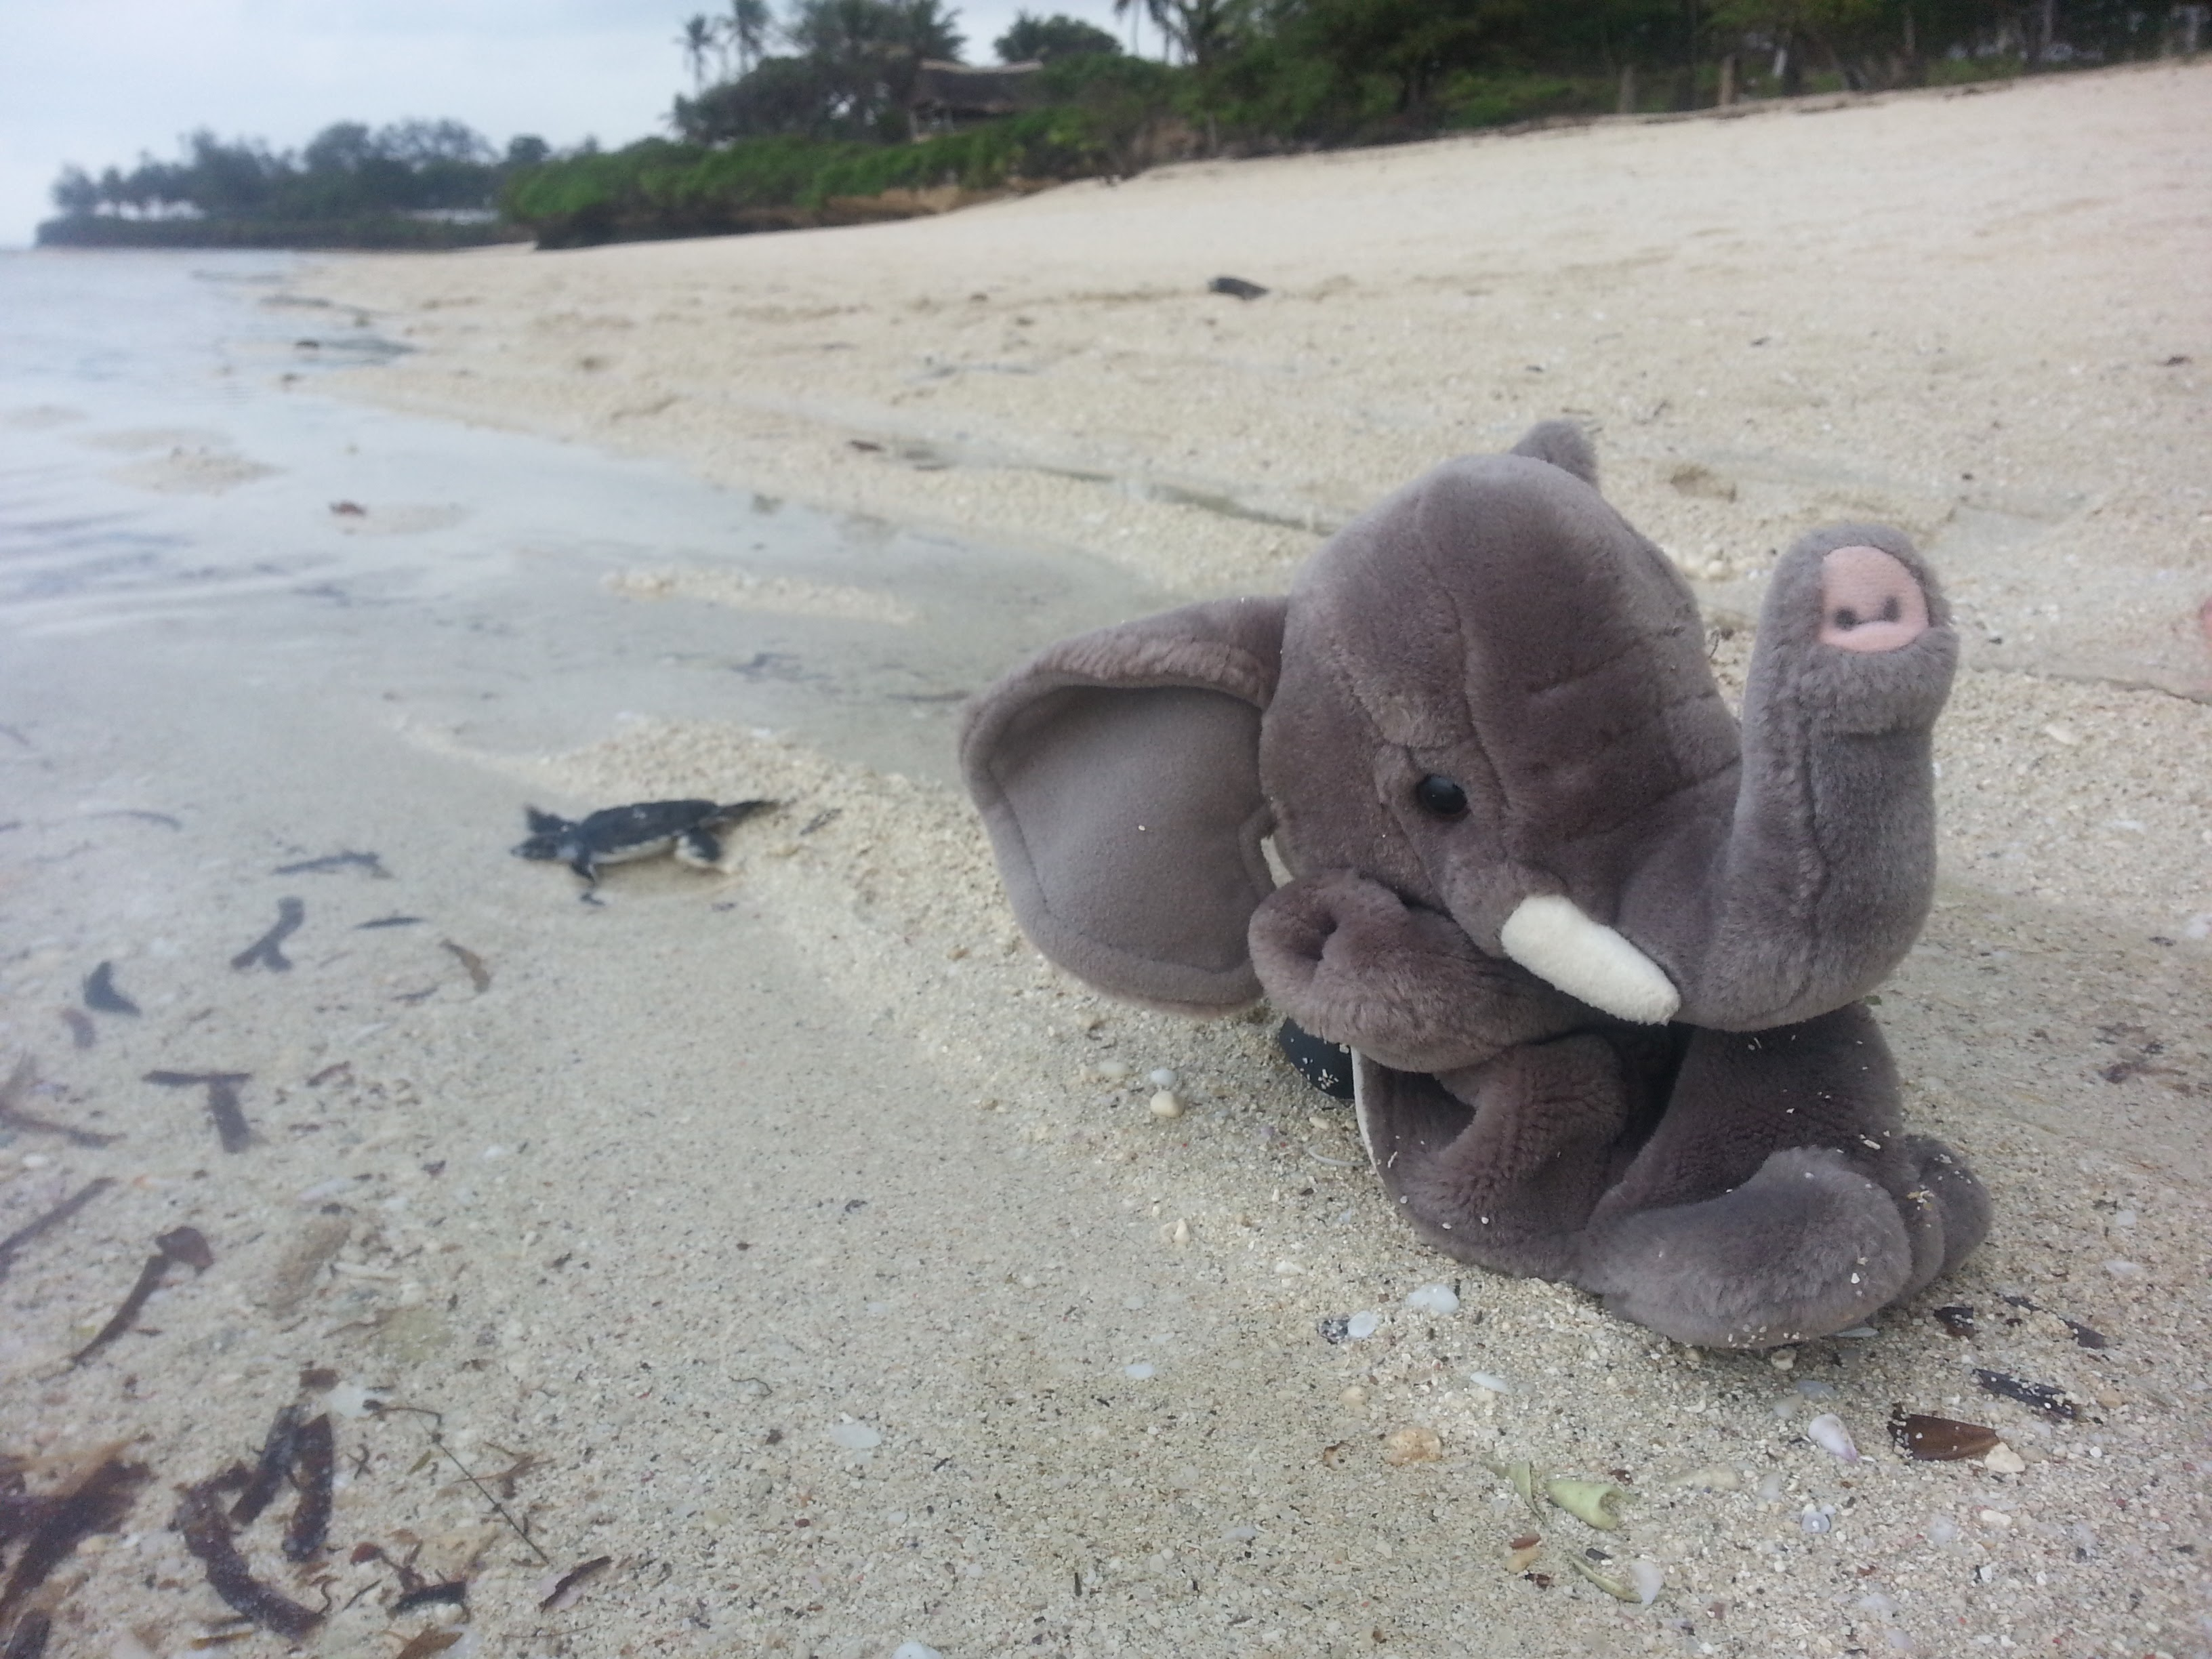 Nelly the Elephant (Twitter: @Nelly_Says) celebrated as the last baby turtle finally reached the ocean!